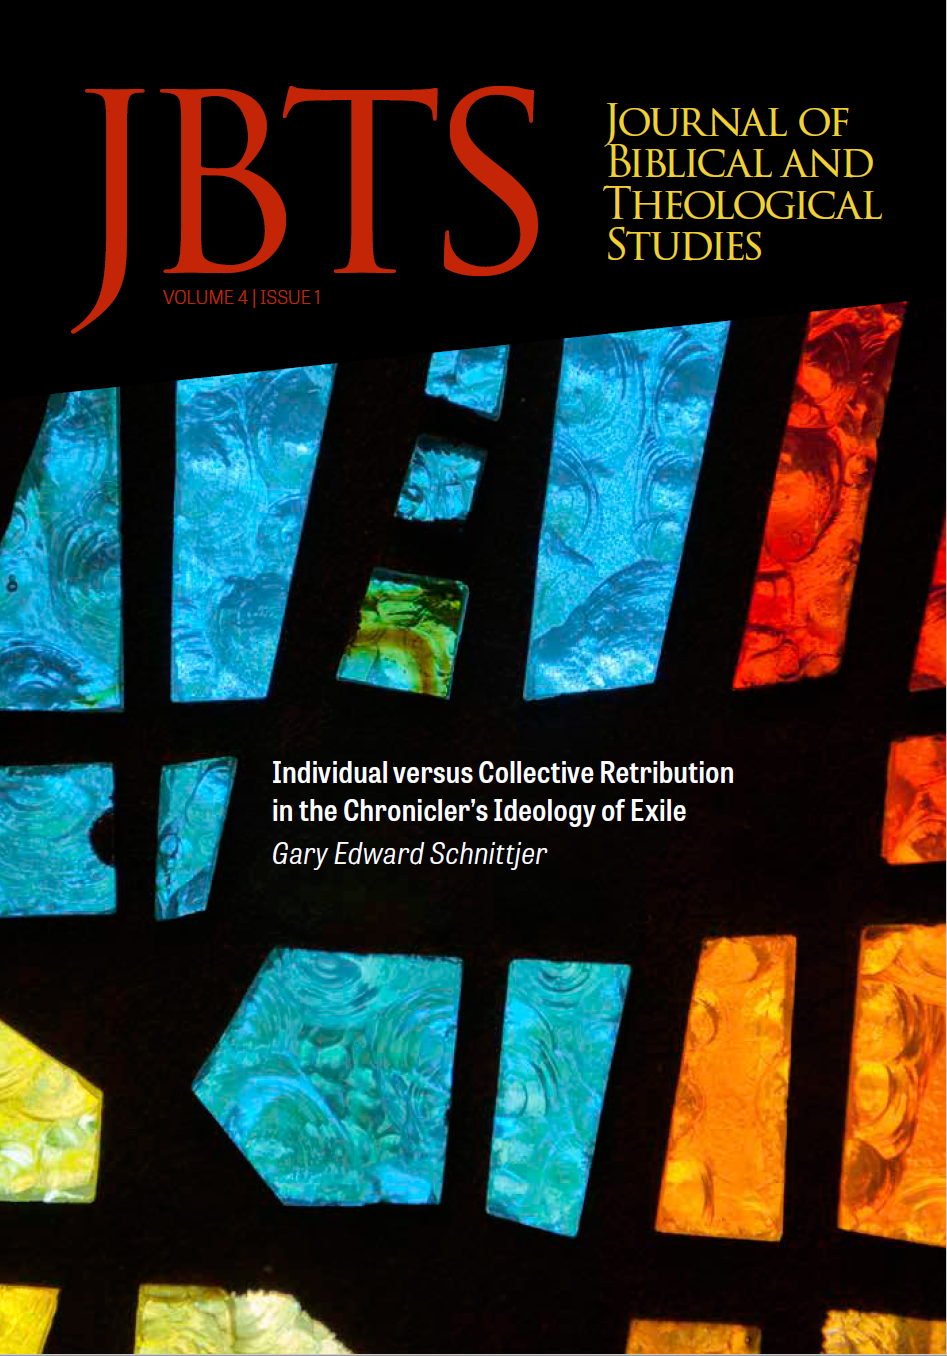 JBTS Online | Journal of Biblical and Theological Studies